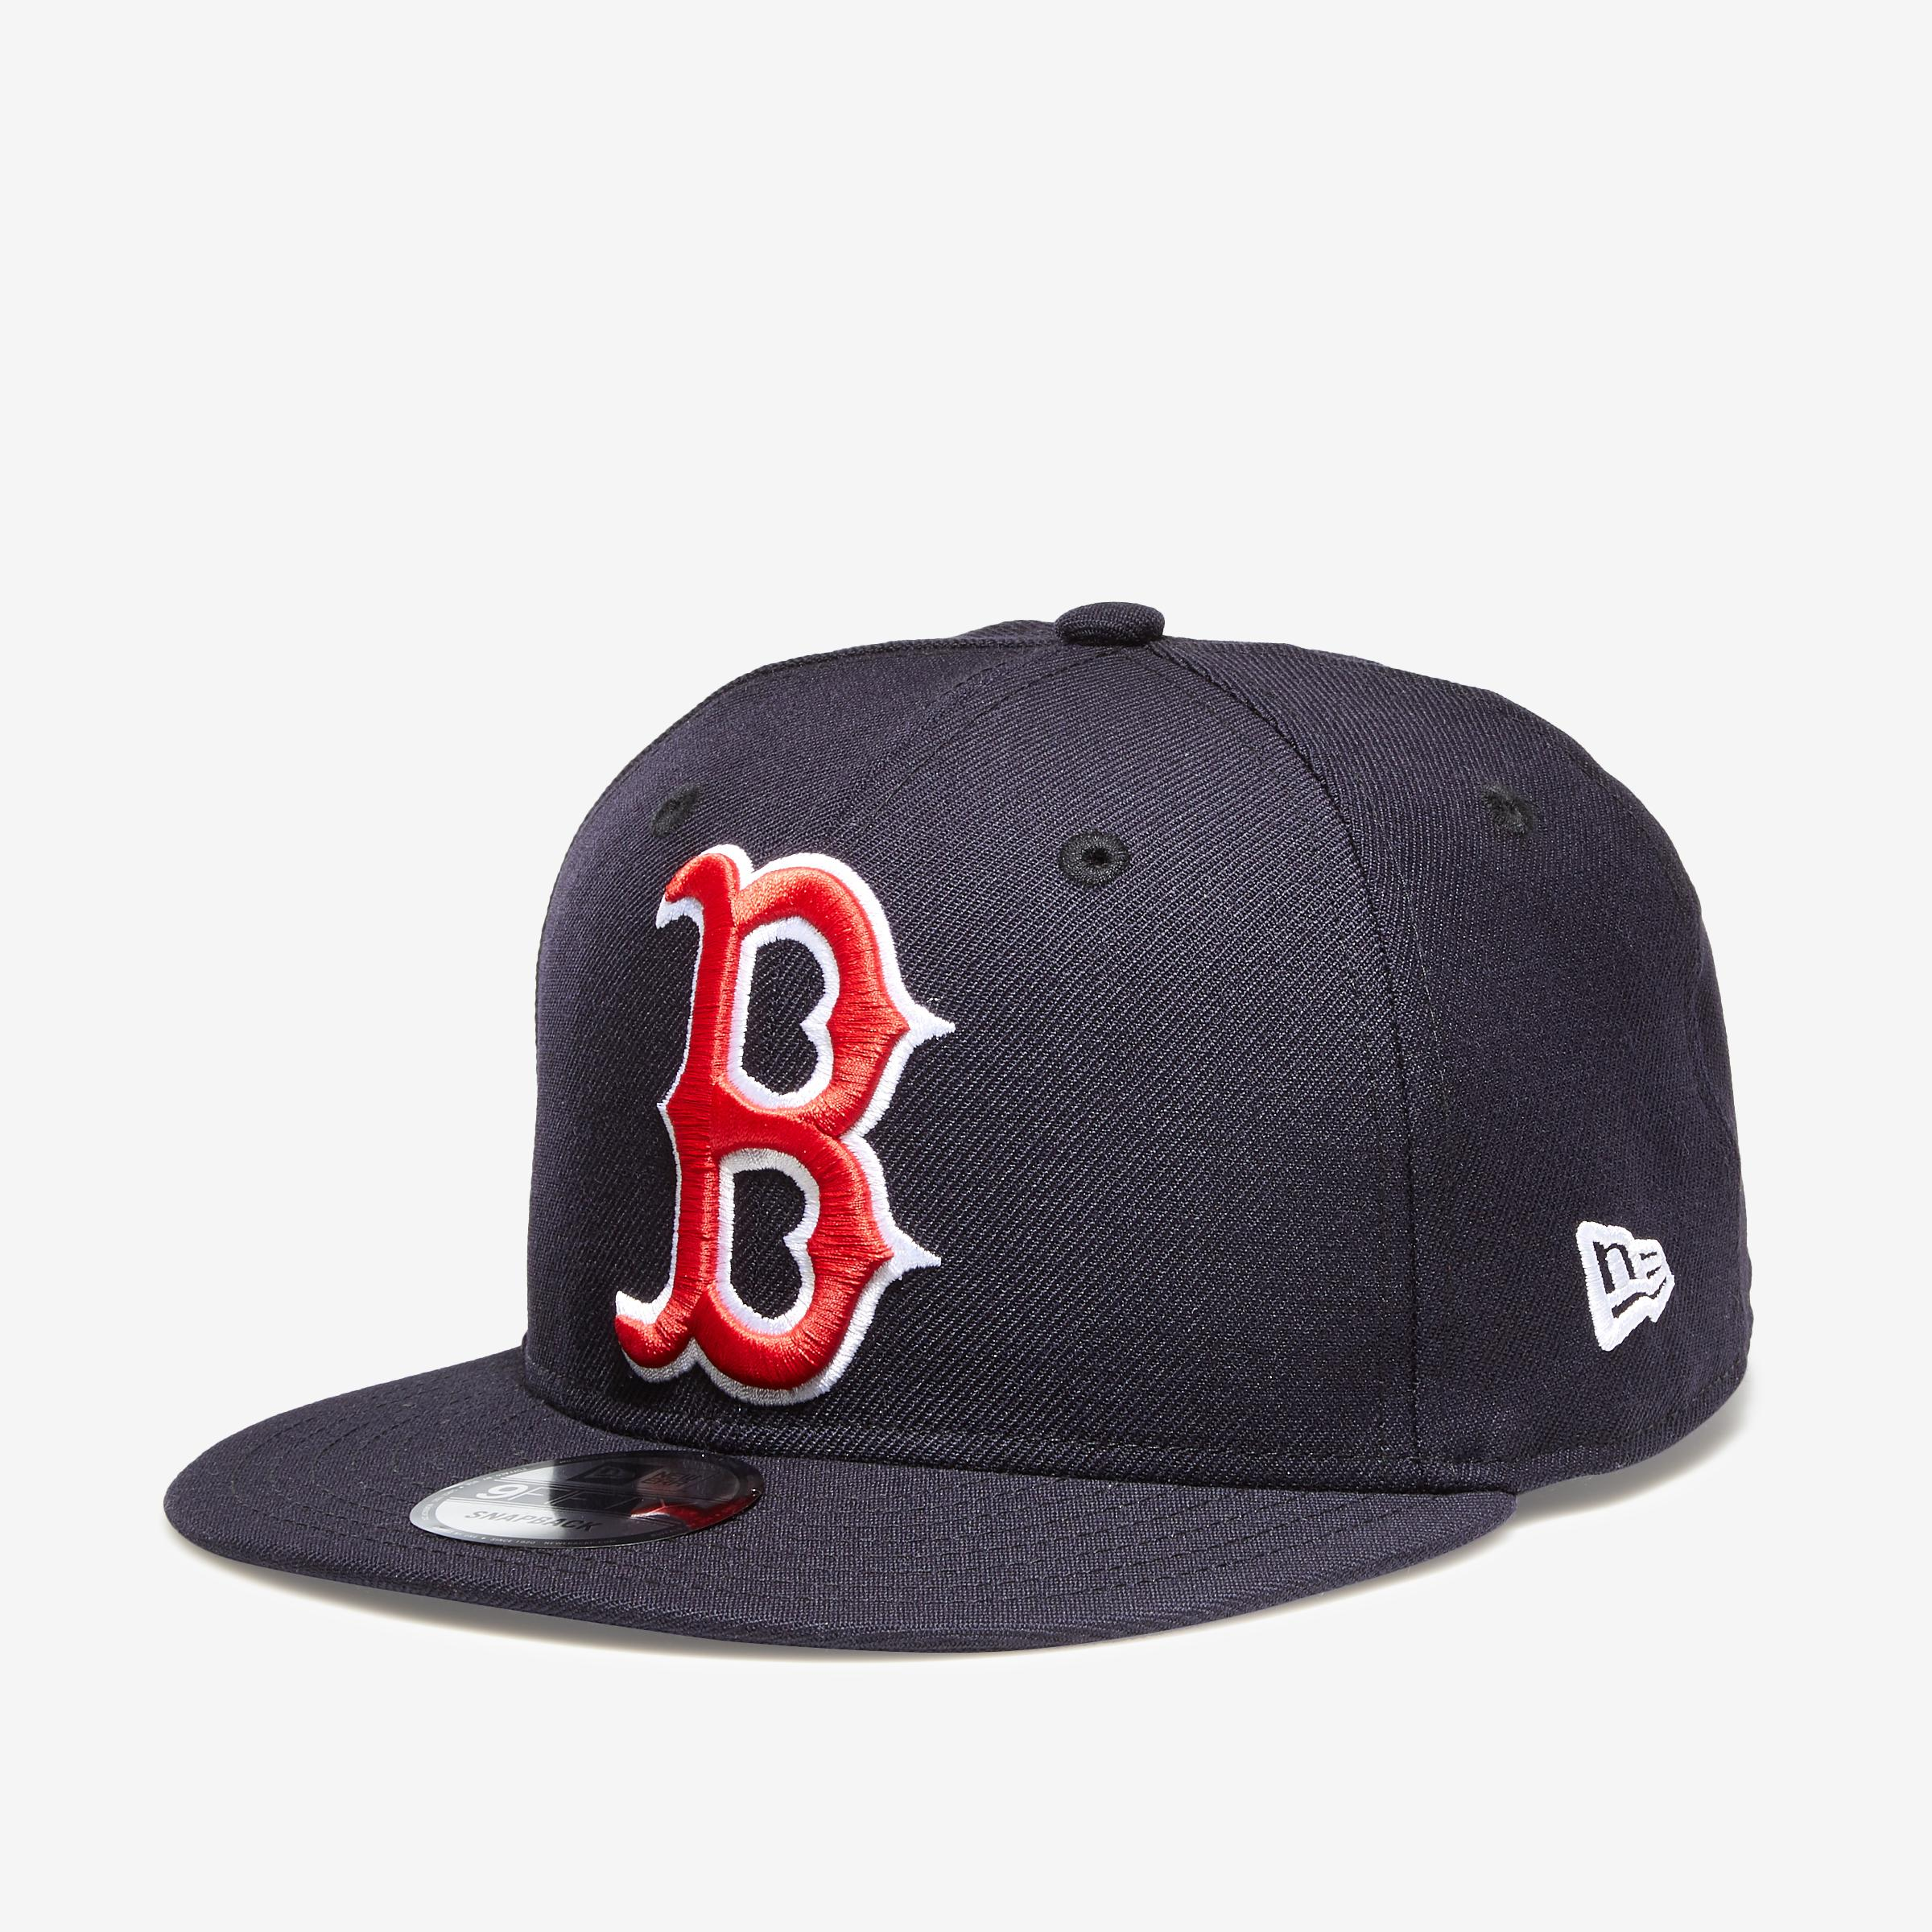 Red Sox 9fifty Snapback